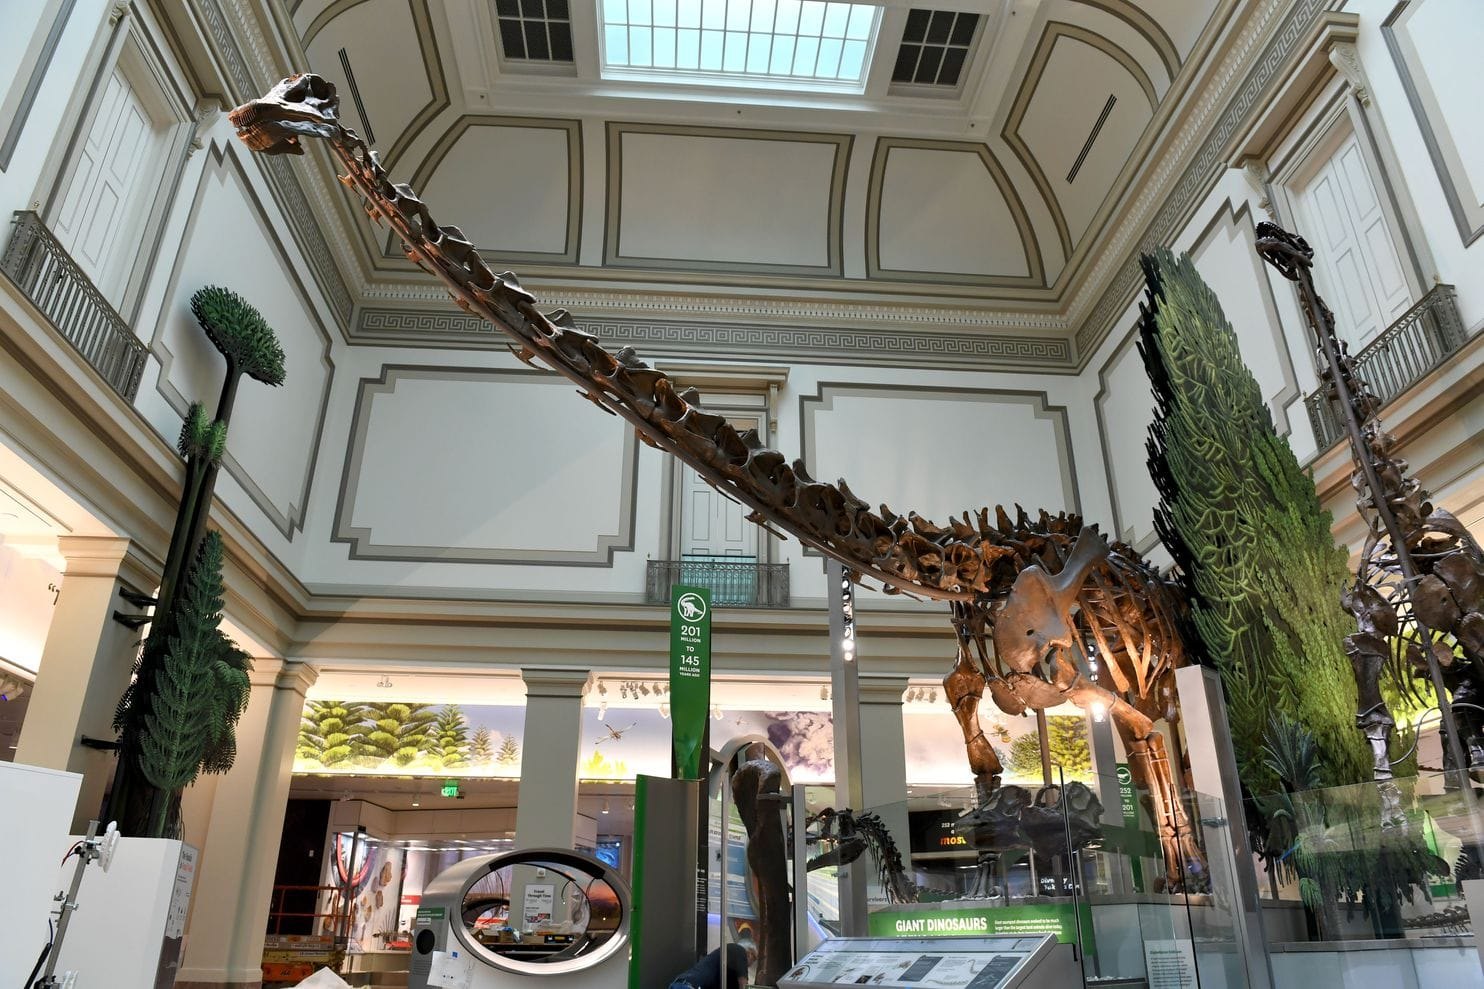 A diplodocus that lived 152 million years ago looms over the National Museum of Natural History